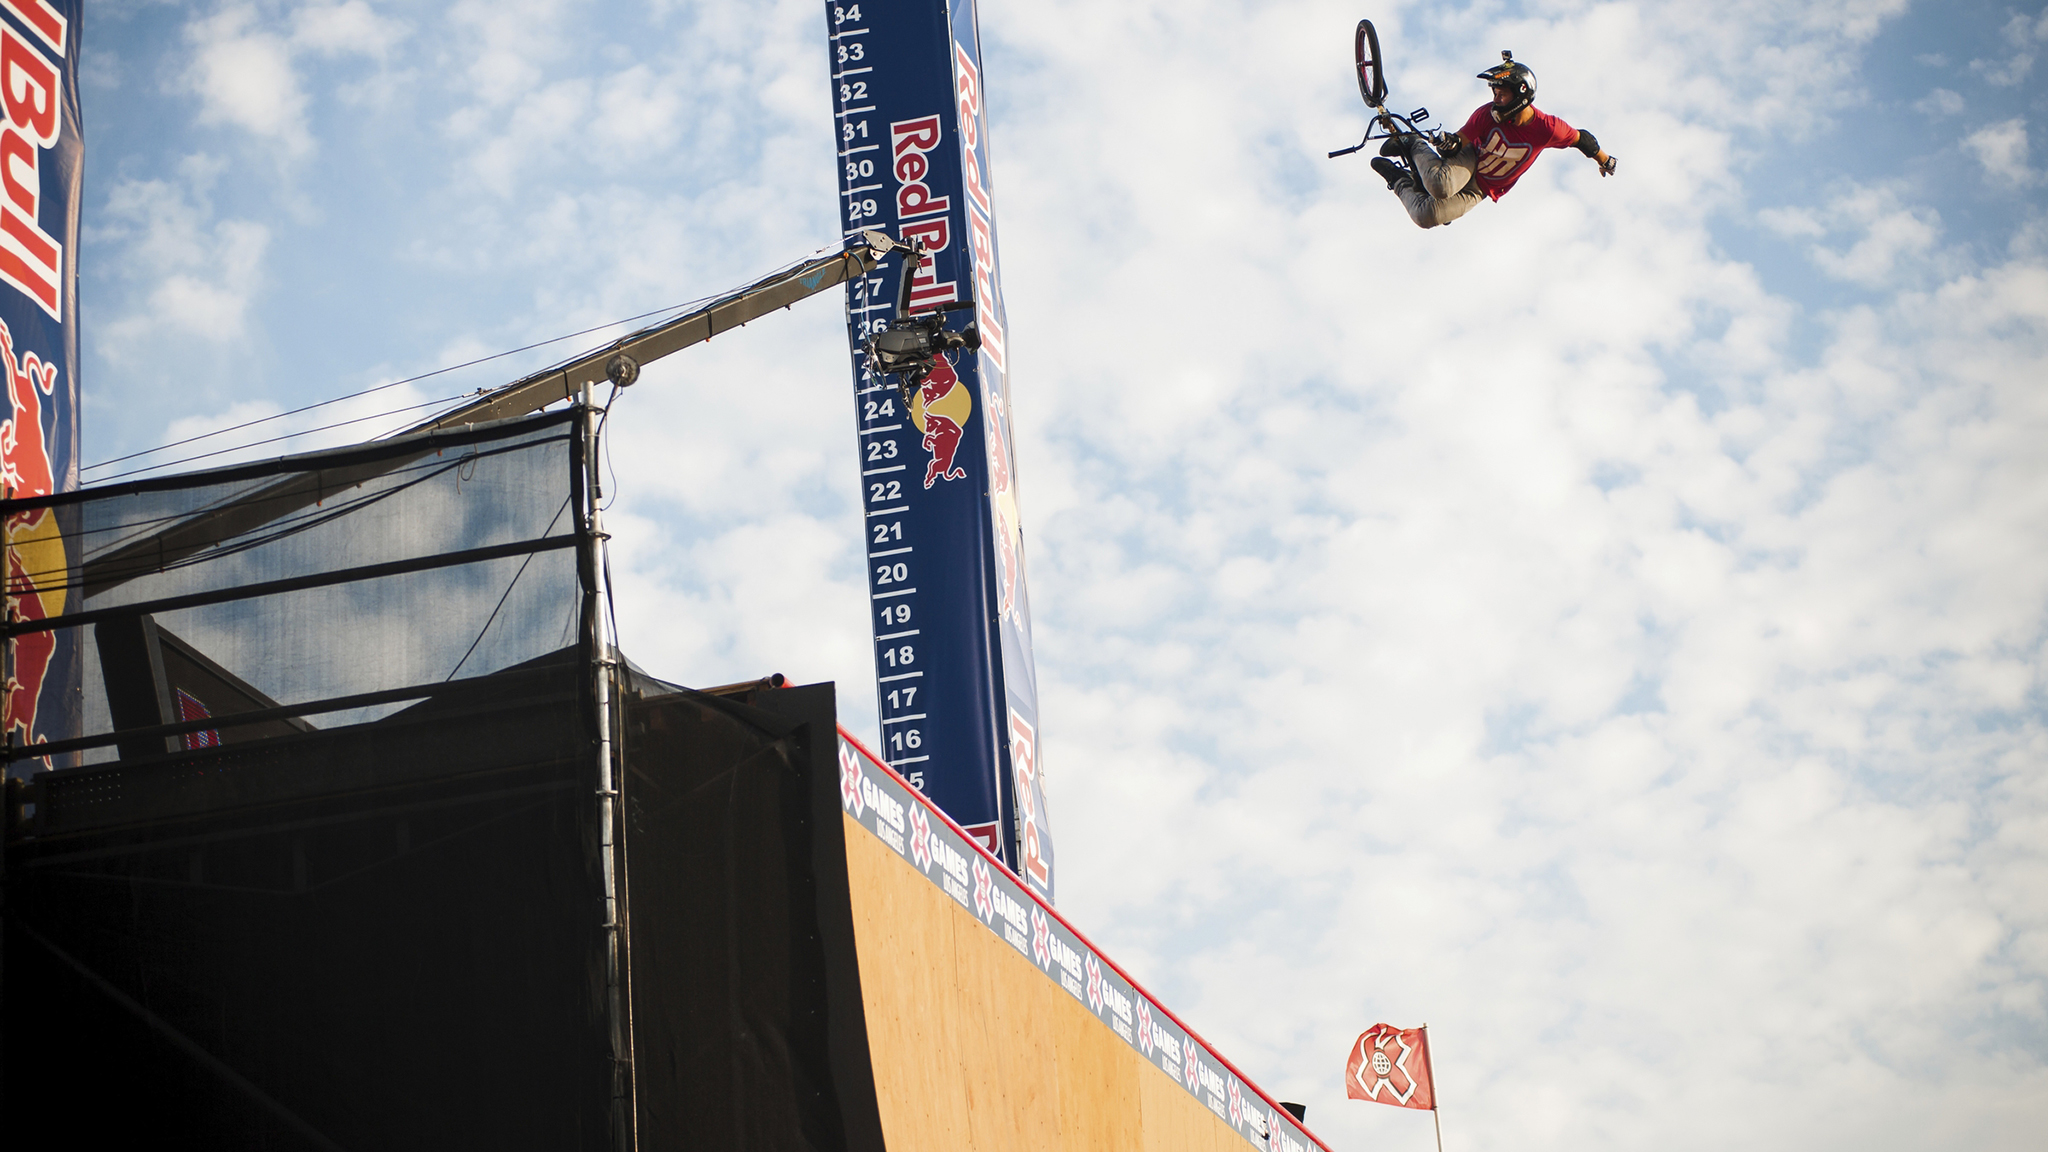 Looking back at BMX Big Air